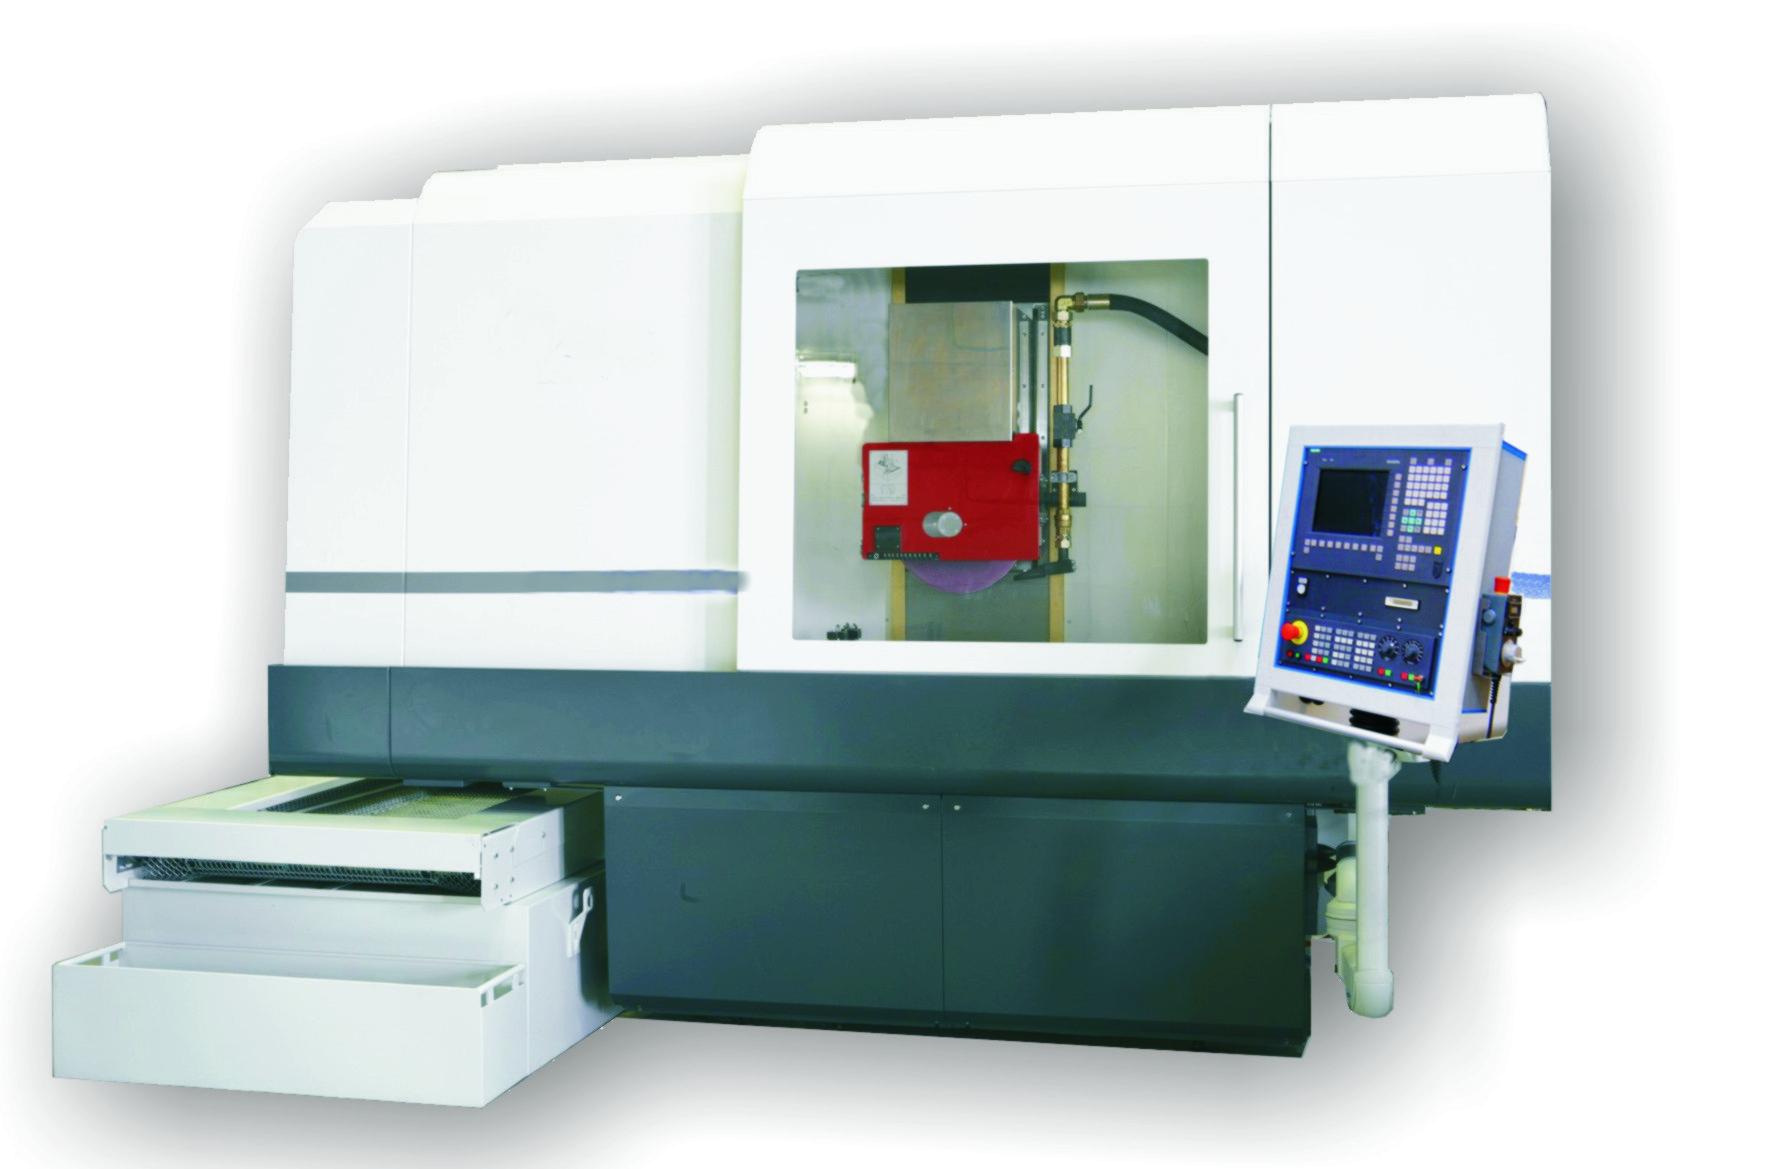 Precison surface grinding